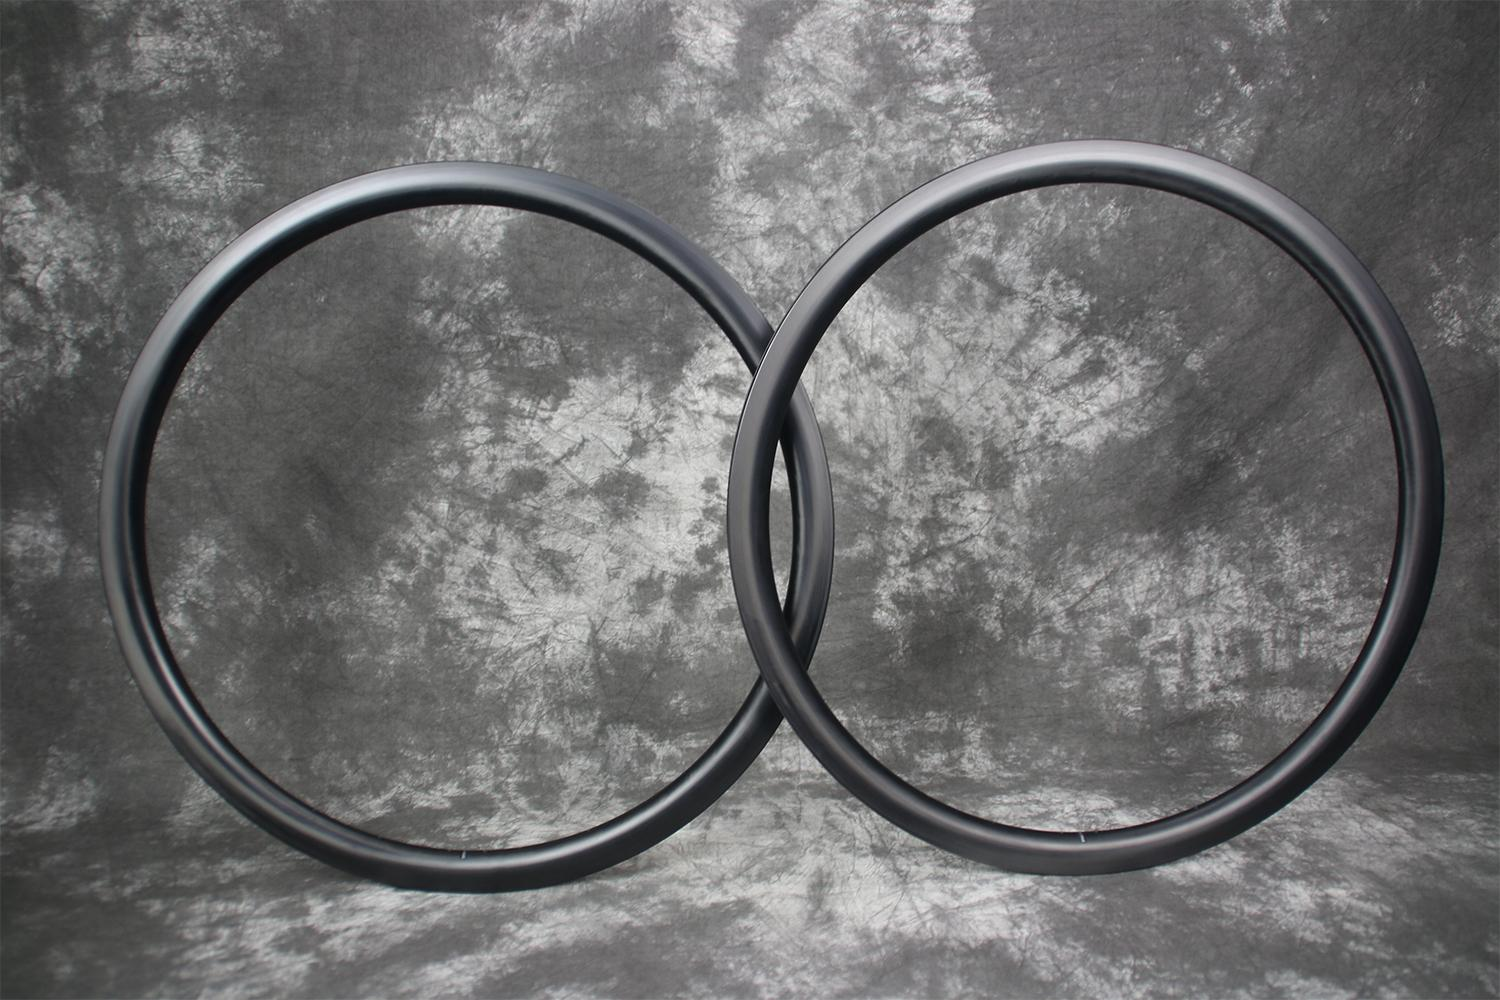 700c-35mm-paintless-finish-ud-fiber-pattern-carbon-rims-flyweight-style